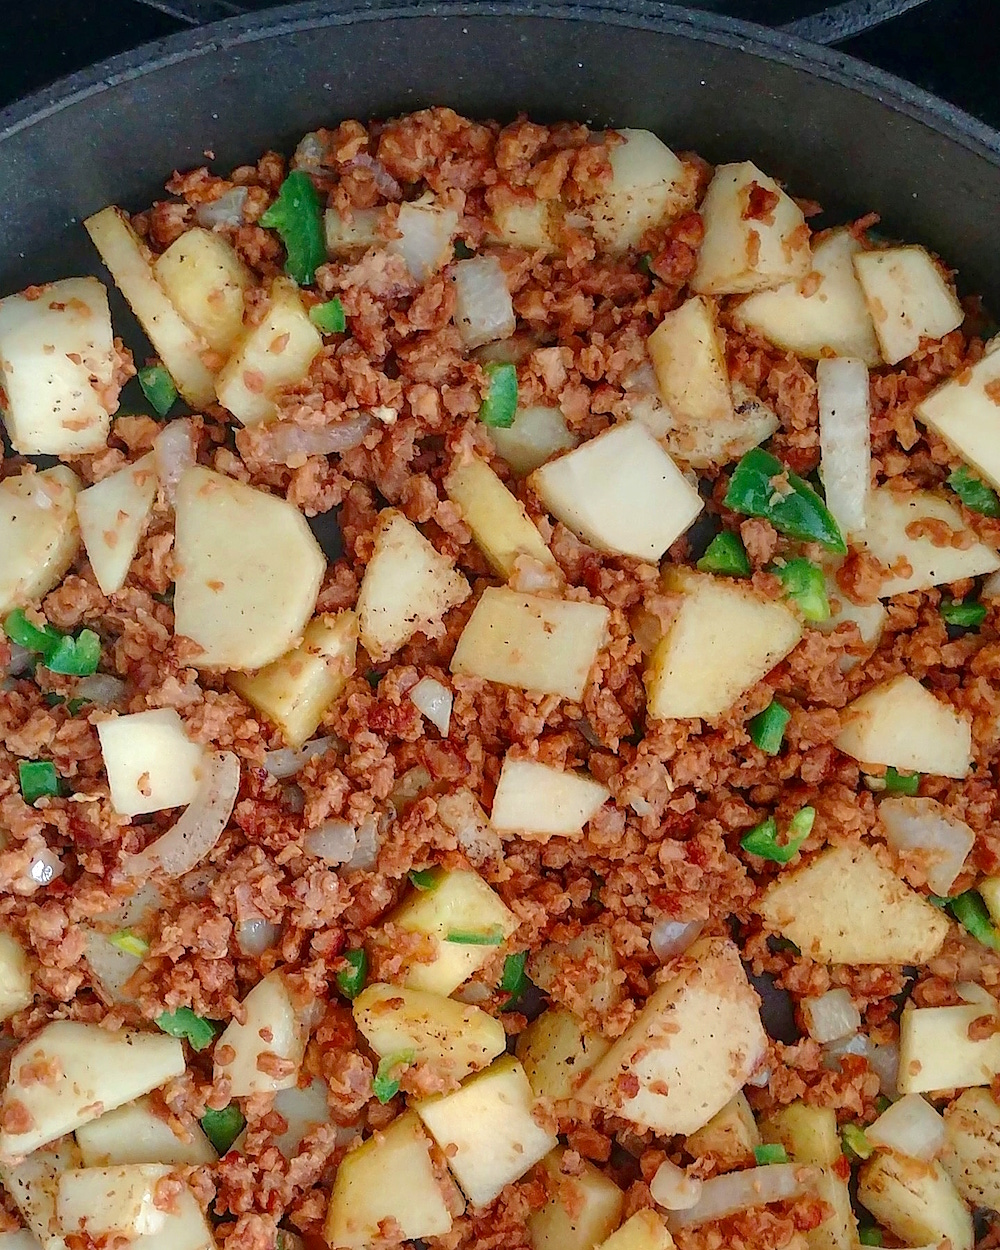 Vegan Mexican Recipes Picadillo Con Papas Ground Beef With Potatoes